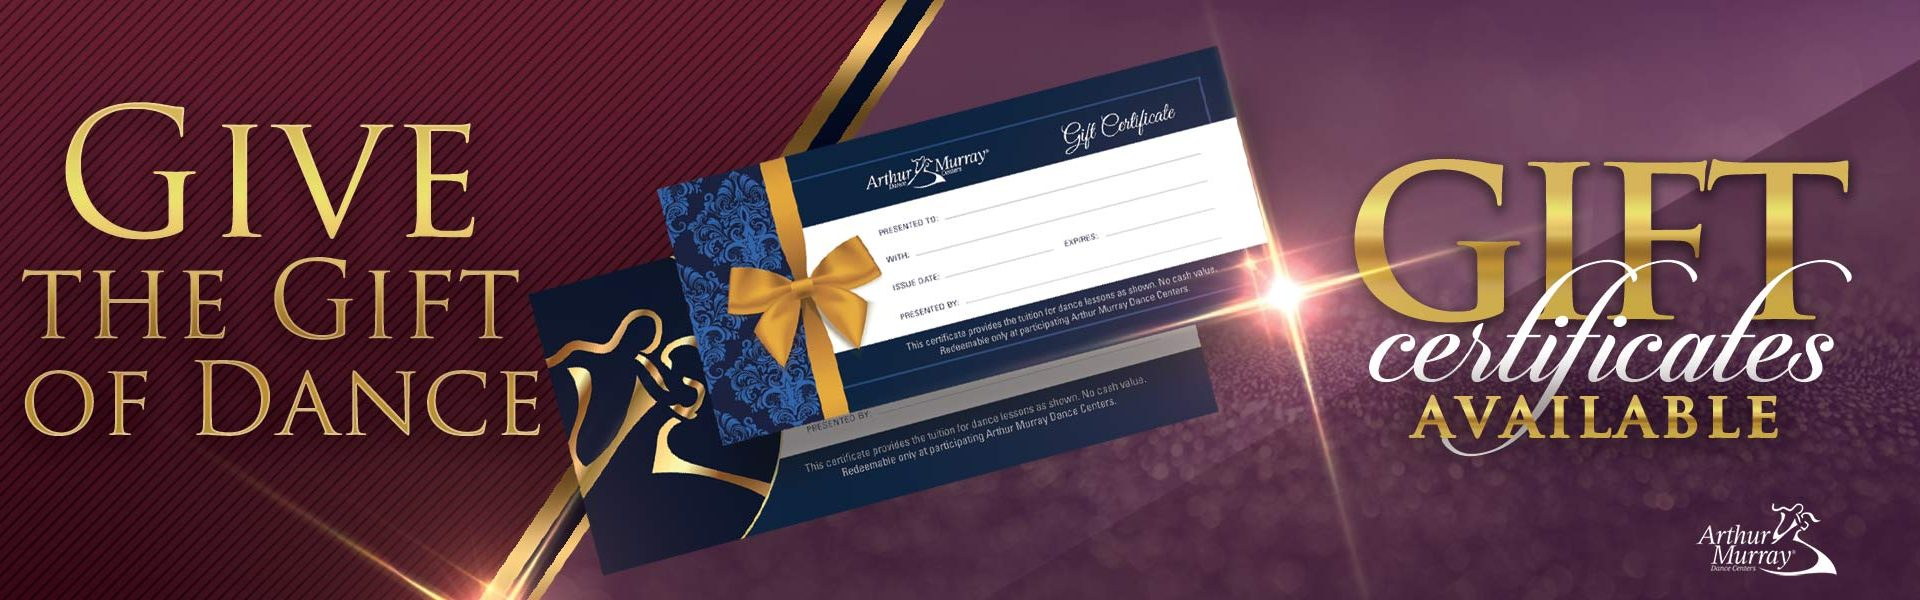 Arthur Murray Waterford Lakes Gift Certificates